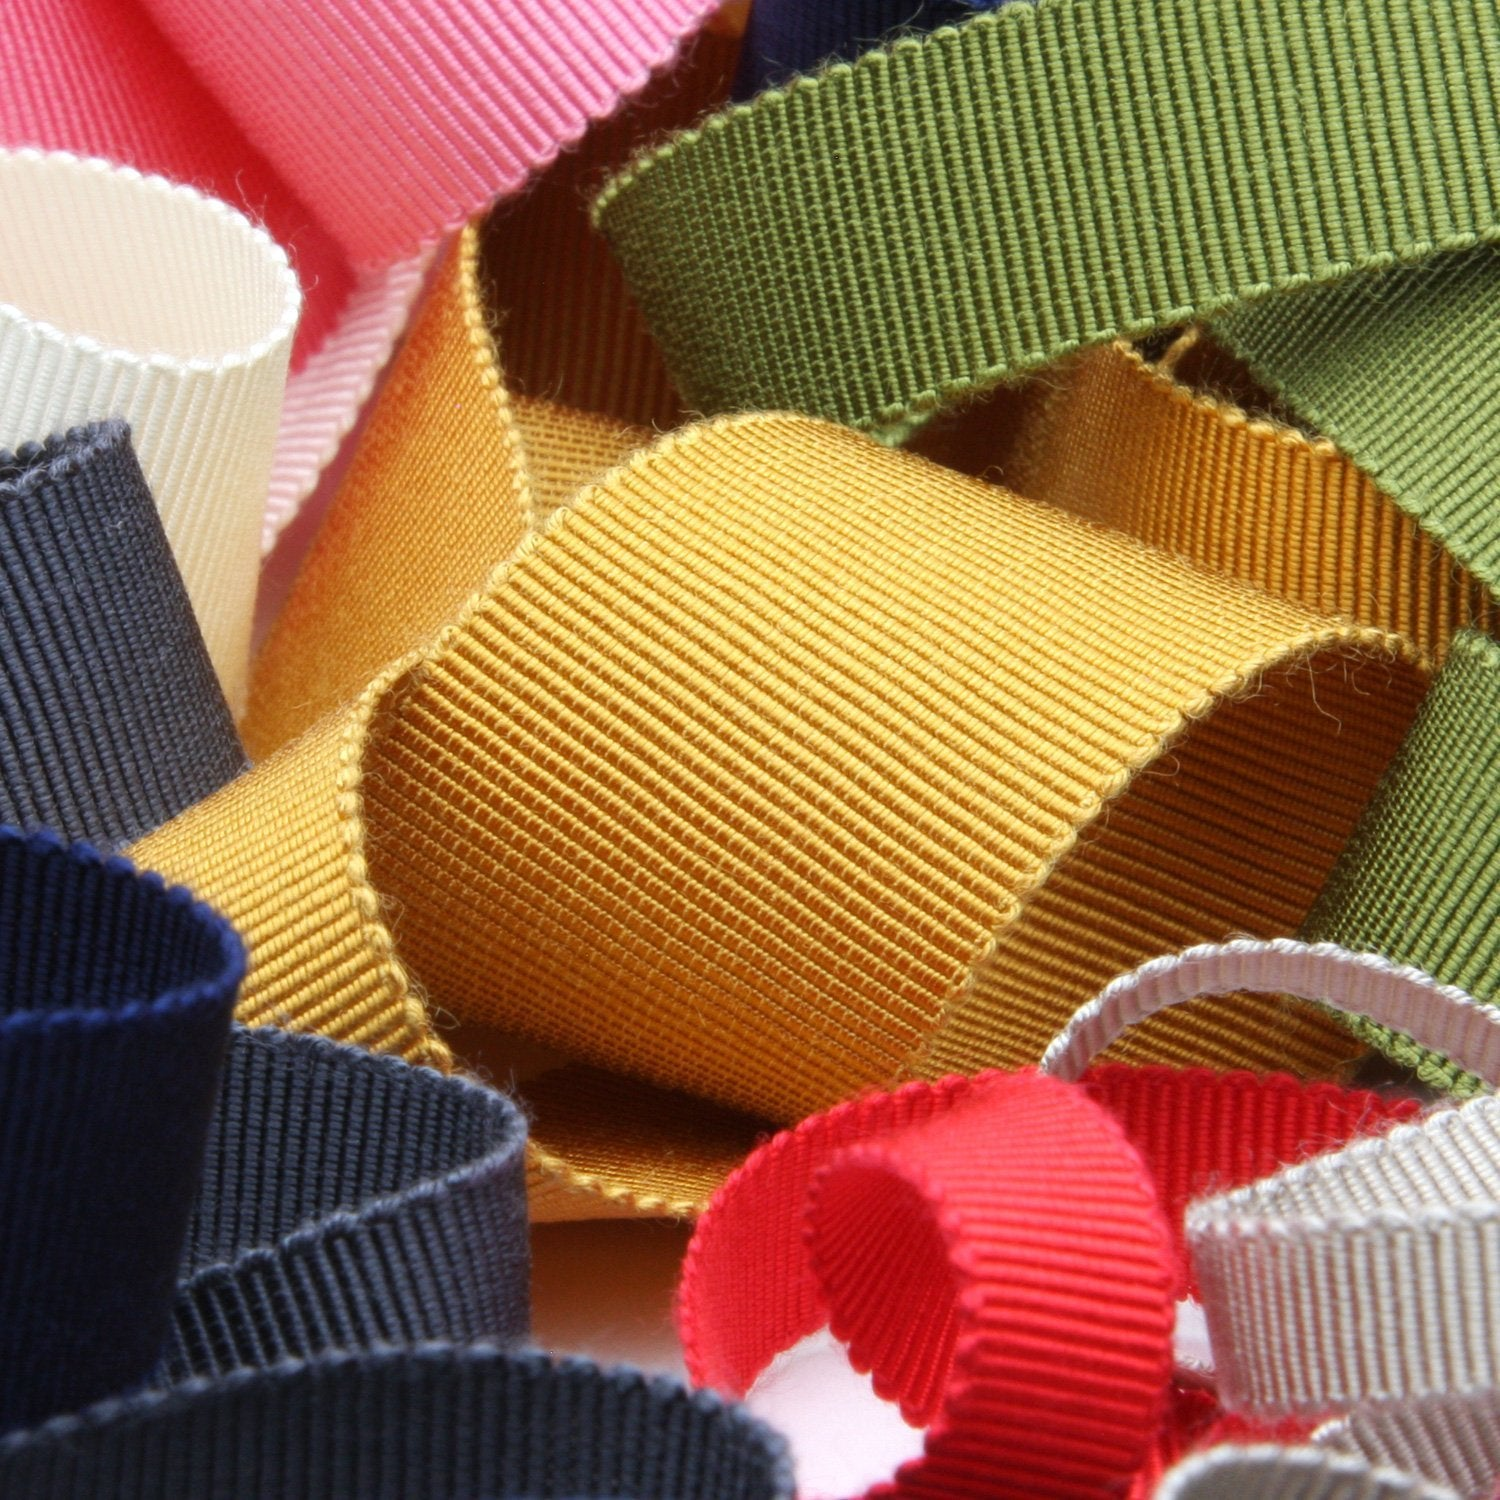 FUJIYAMA RIBBON Rayon Grosgrain Ribbon 5mm 9.14 Meters Roll